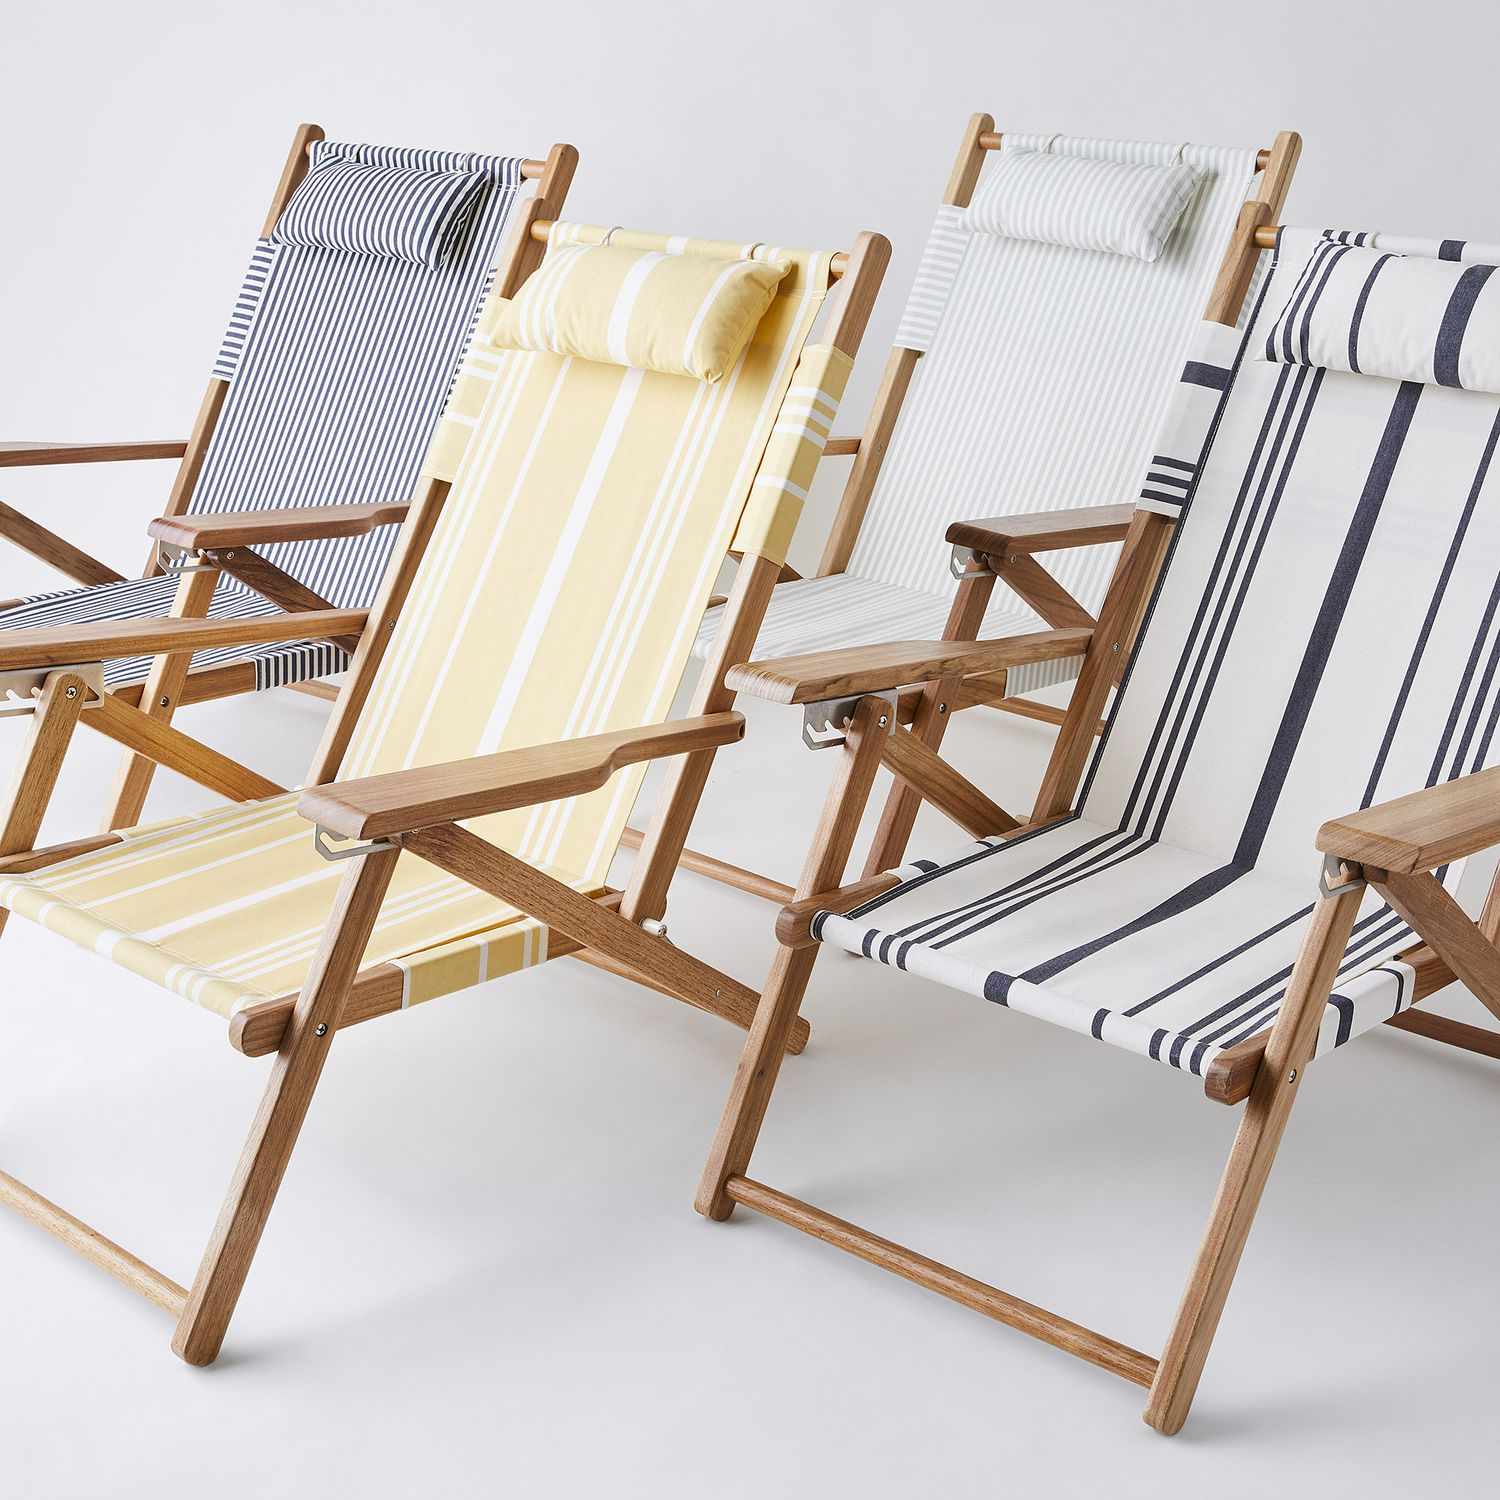 Vintage-Inspired Striped Beach Chairs